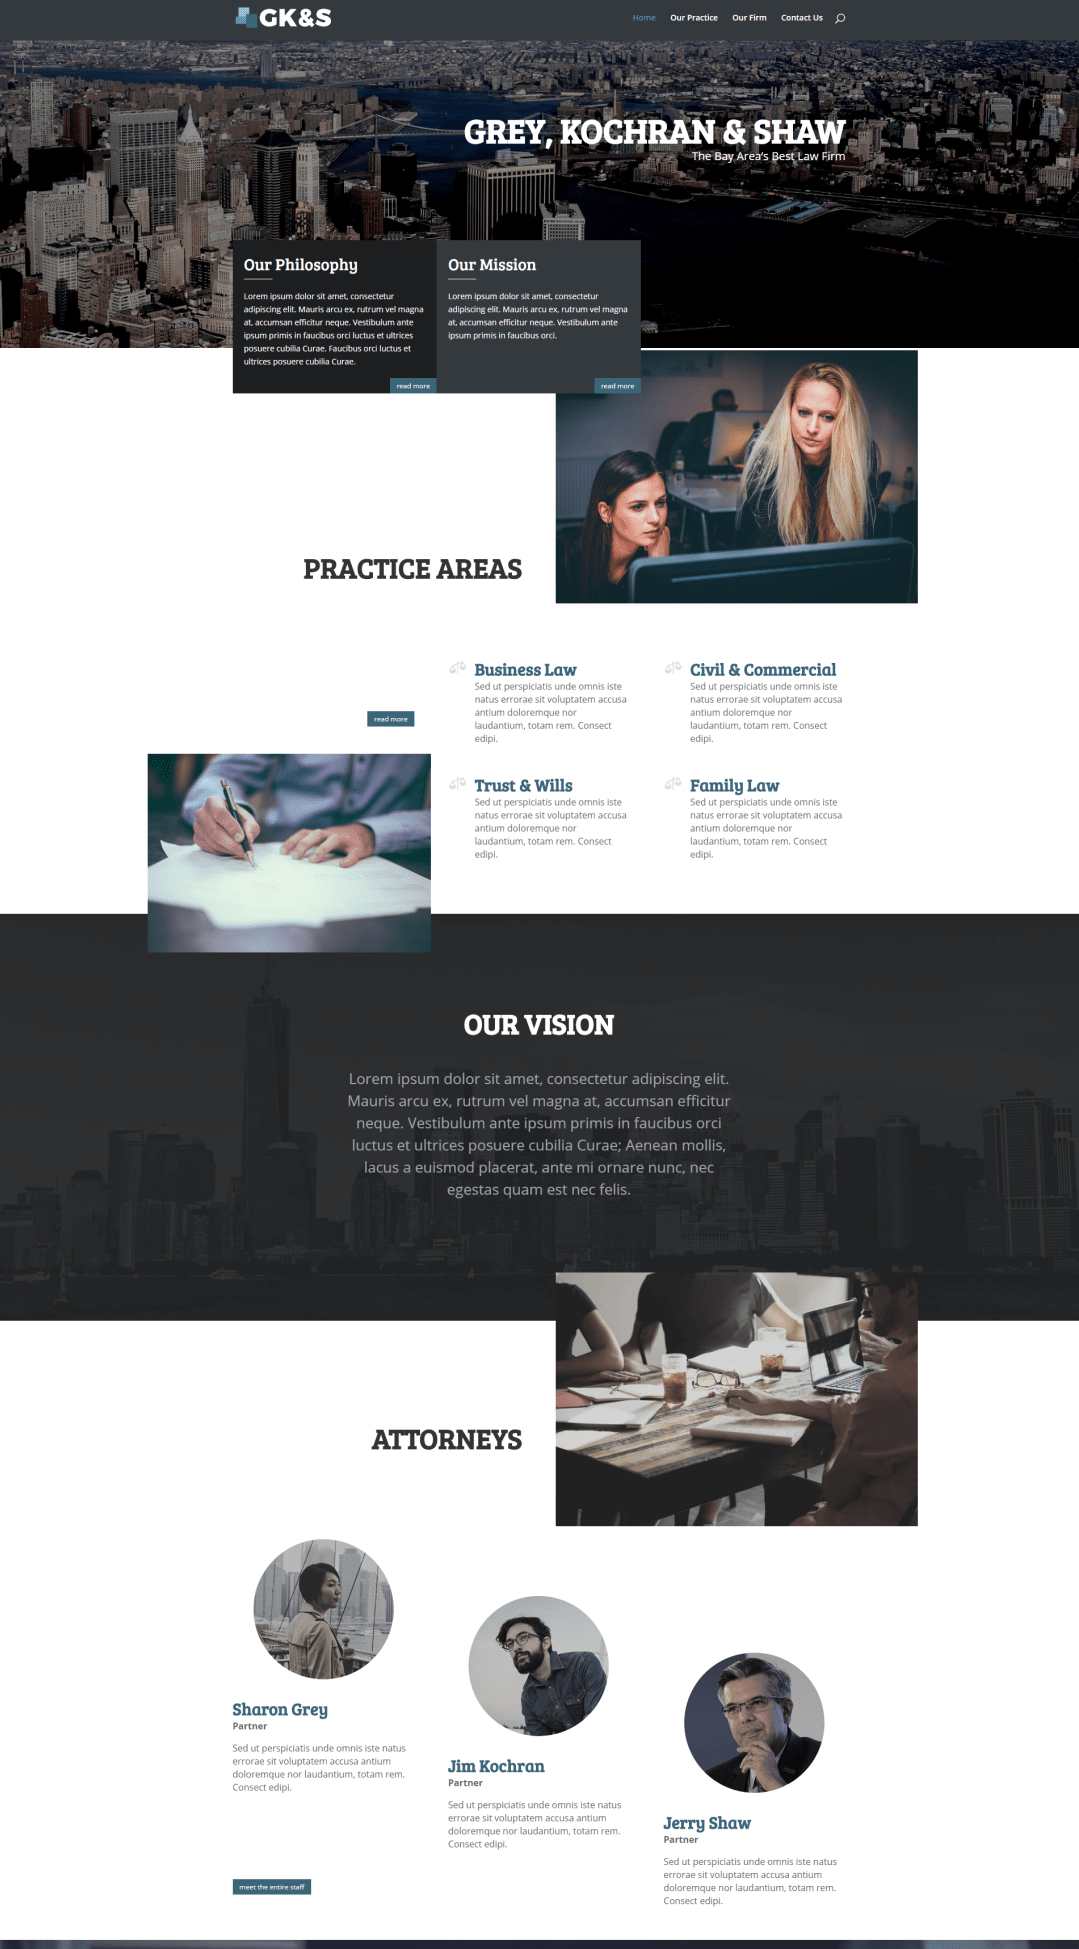 Aattorneys, law firms, agencies and practices